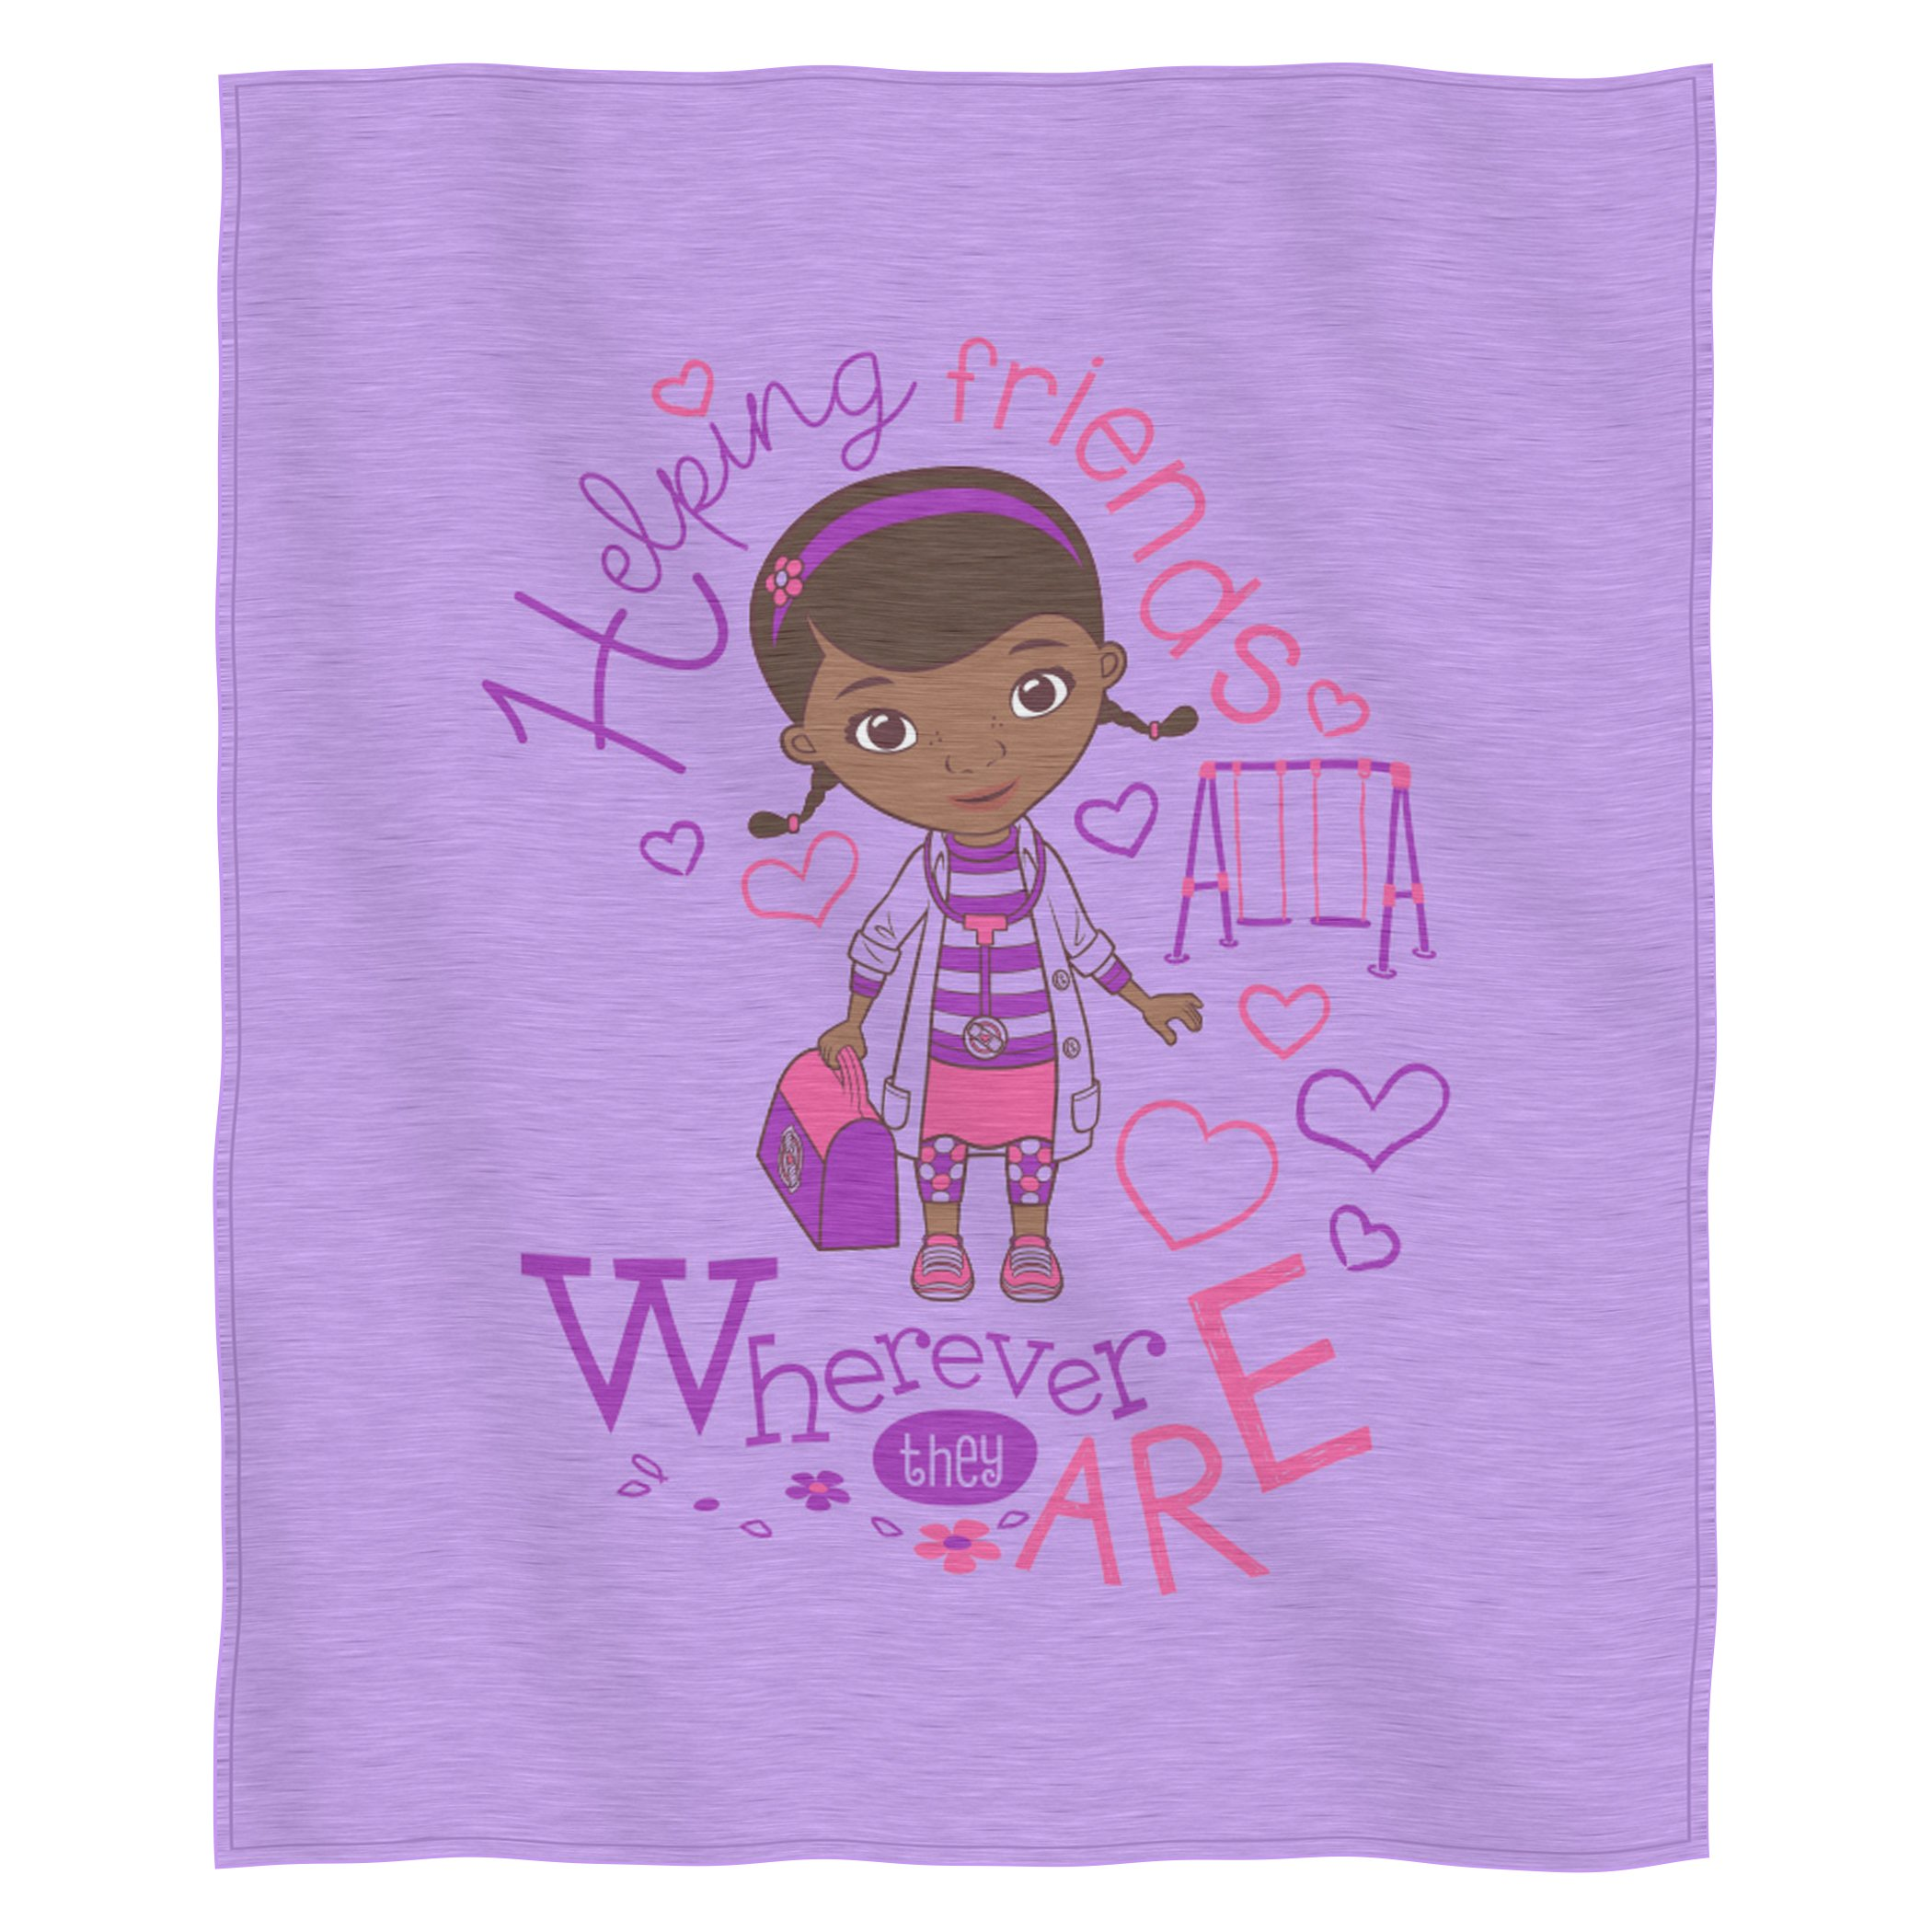 Disney's Doc McStuffins, ''Doc Love'' Sweatshirt Throw Blanket, 50'' x 60'', Multi Color by Disney